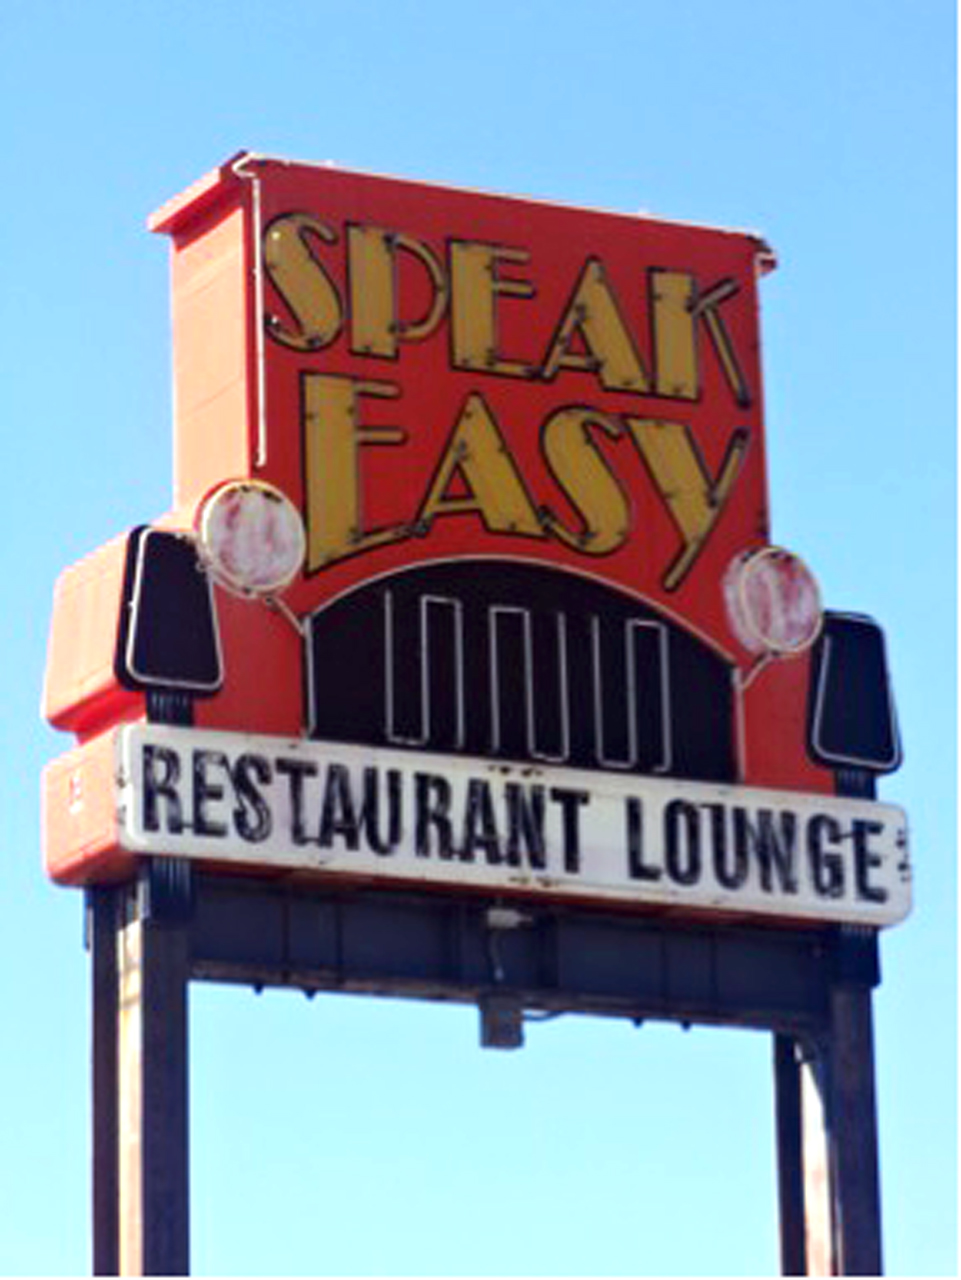 Photo by Kate Gantz. Speak Easy, located just off Eighth Street in Moorhead near Safari Cinema, is a 1920s-themed restaurant and lounge that offers both Italian and American food and drink classics.